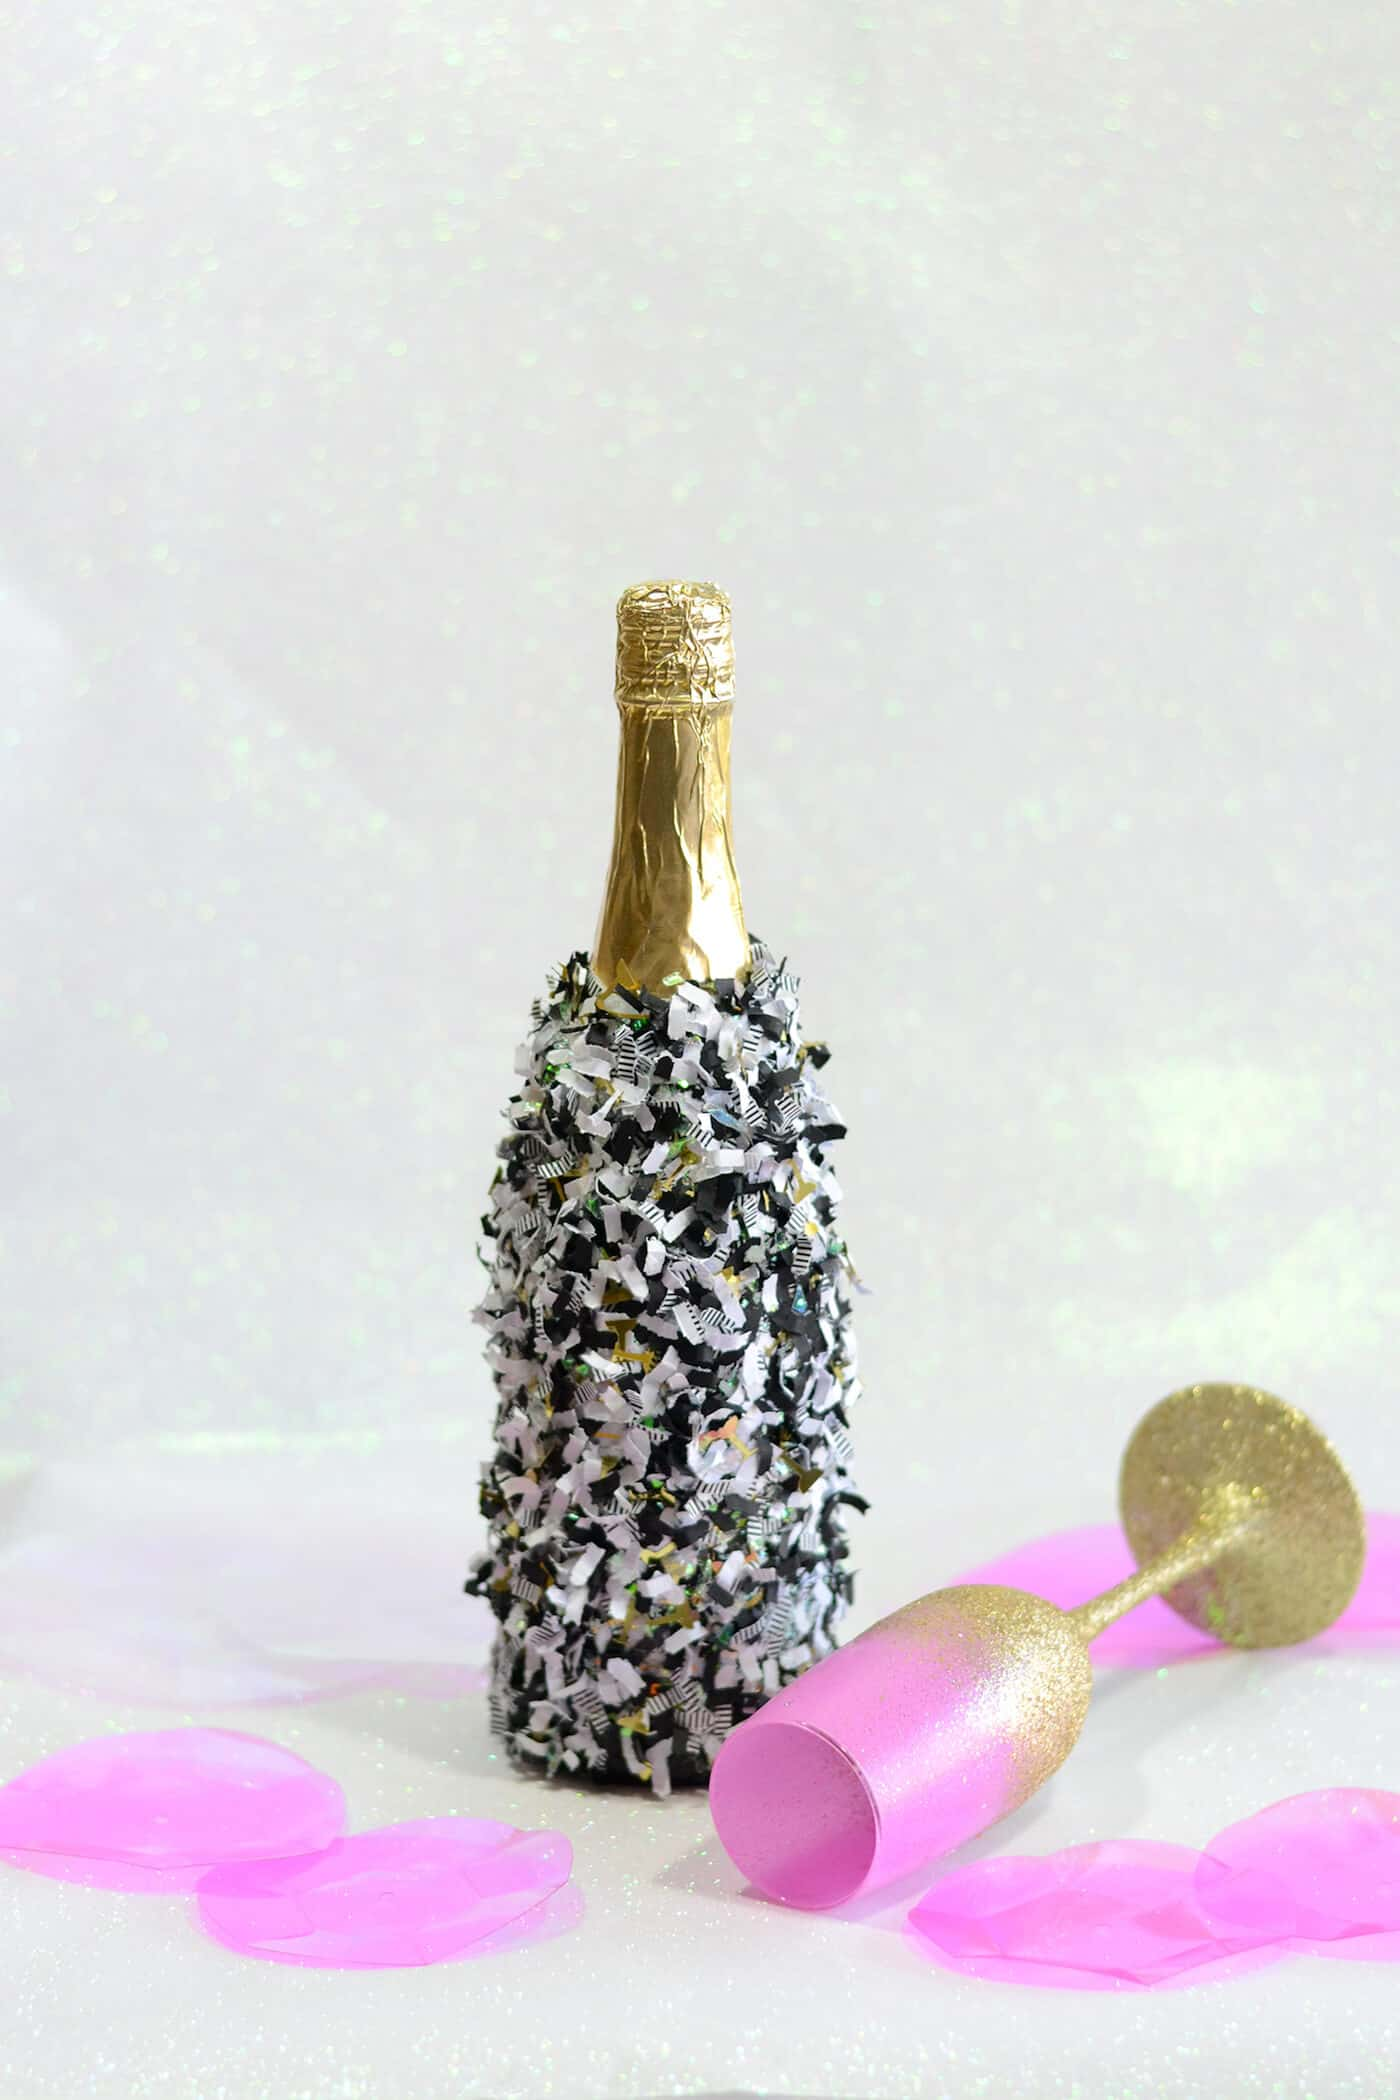 Use your favorite party confetti and Mod Podge to customize a champagne bottle for New Years Eve! Great for weddings too, or any other celebration.